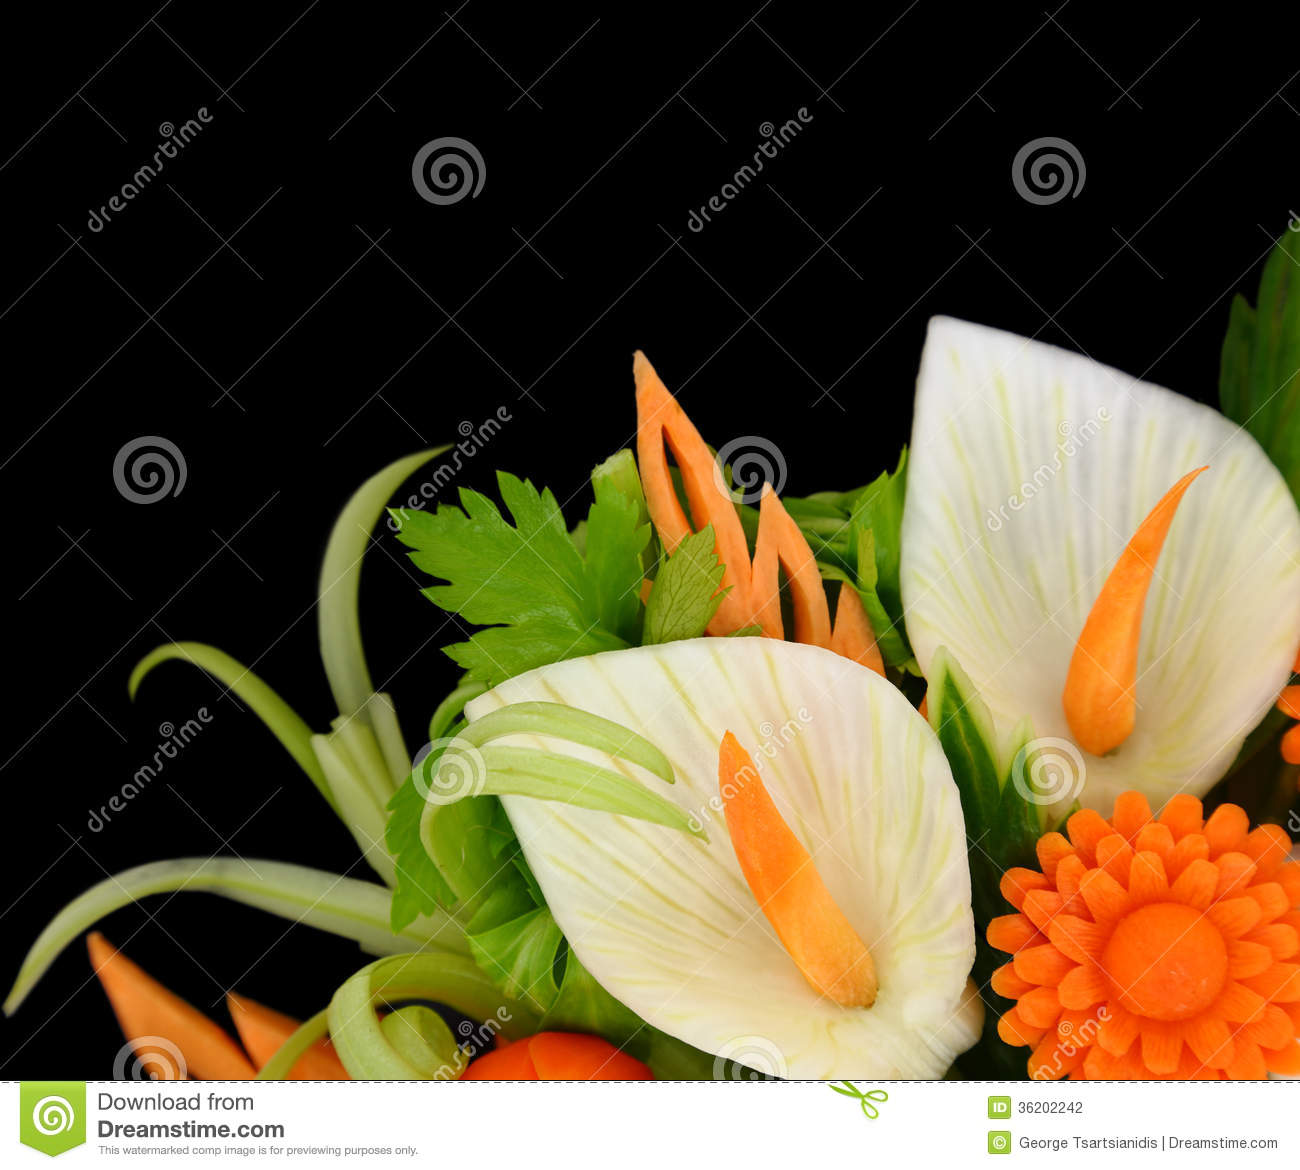 Vegetables Carving Stock Photography